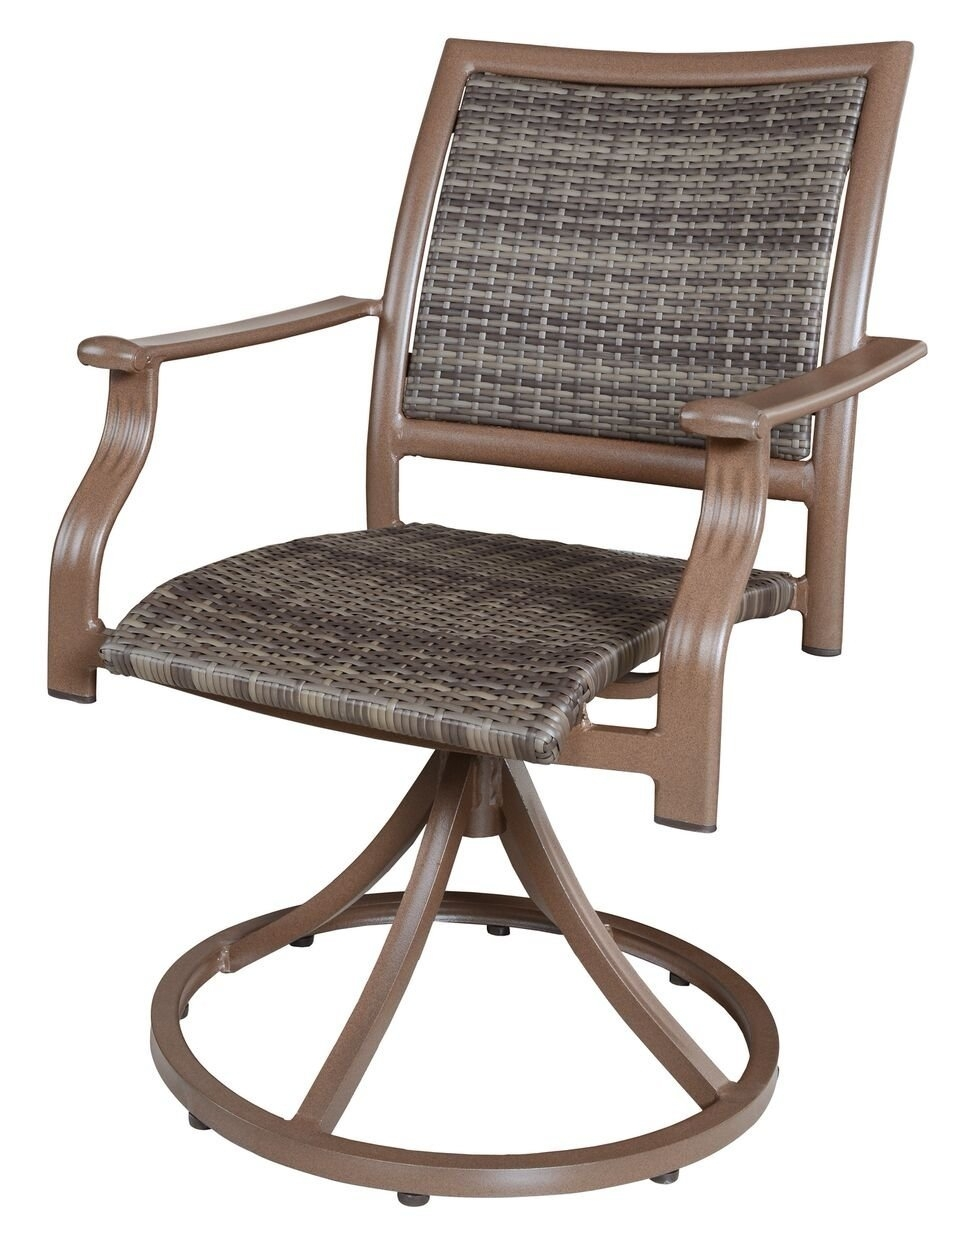 High Chair : Brown Stackable Outdoor Chairs Bronze Outdoor Chairs Within Hampton Bay Rocking Patio Chairs (#11 of 15)